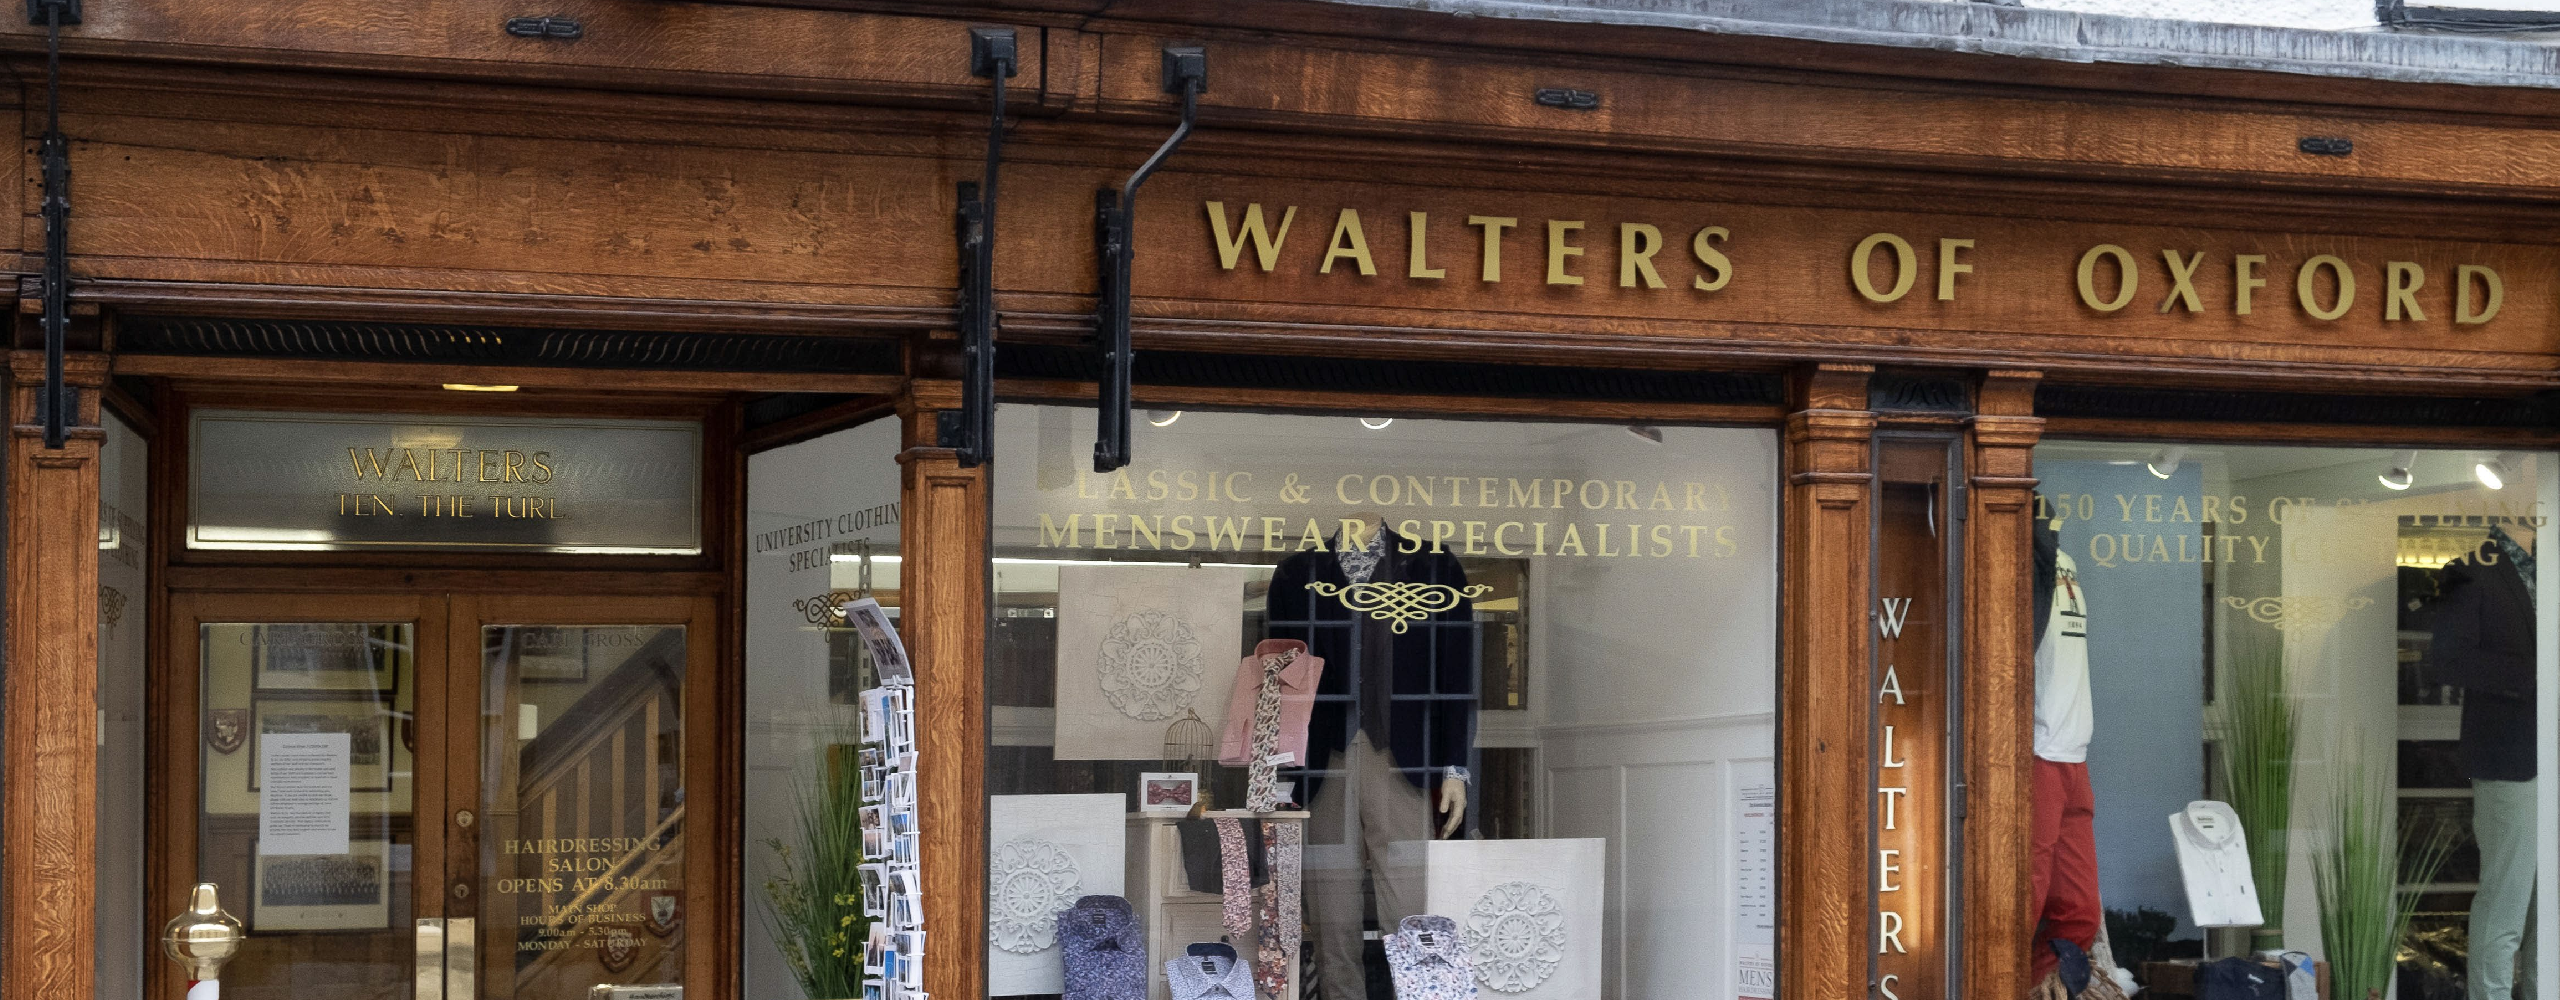 About Walters of Oxford